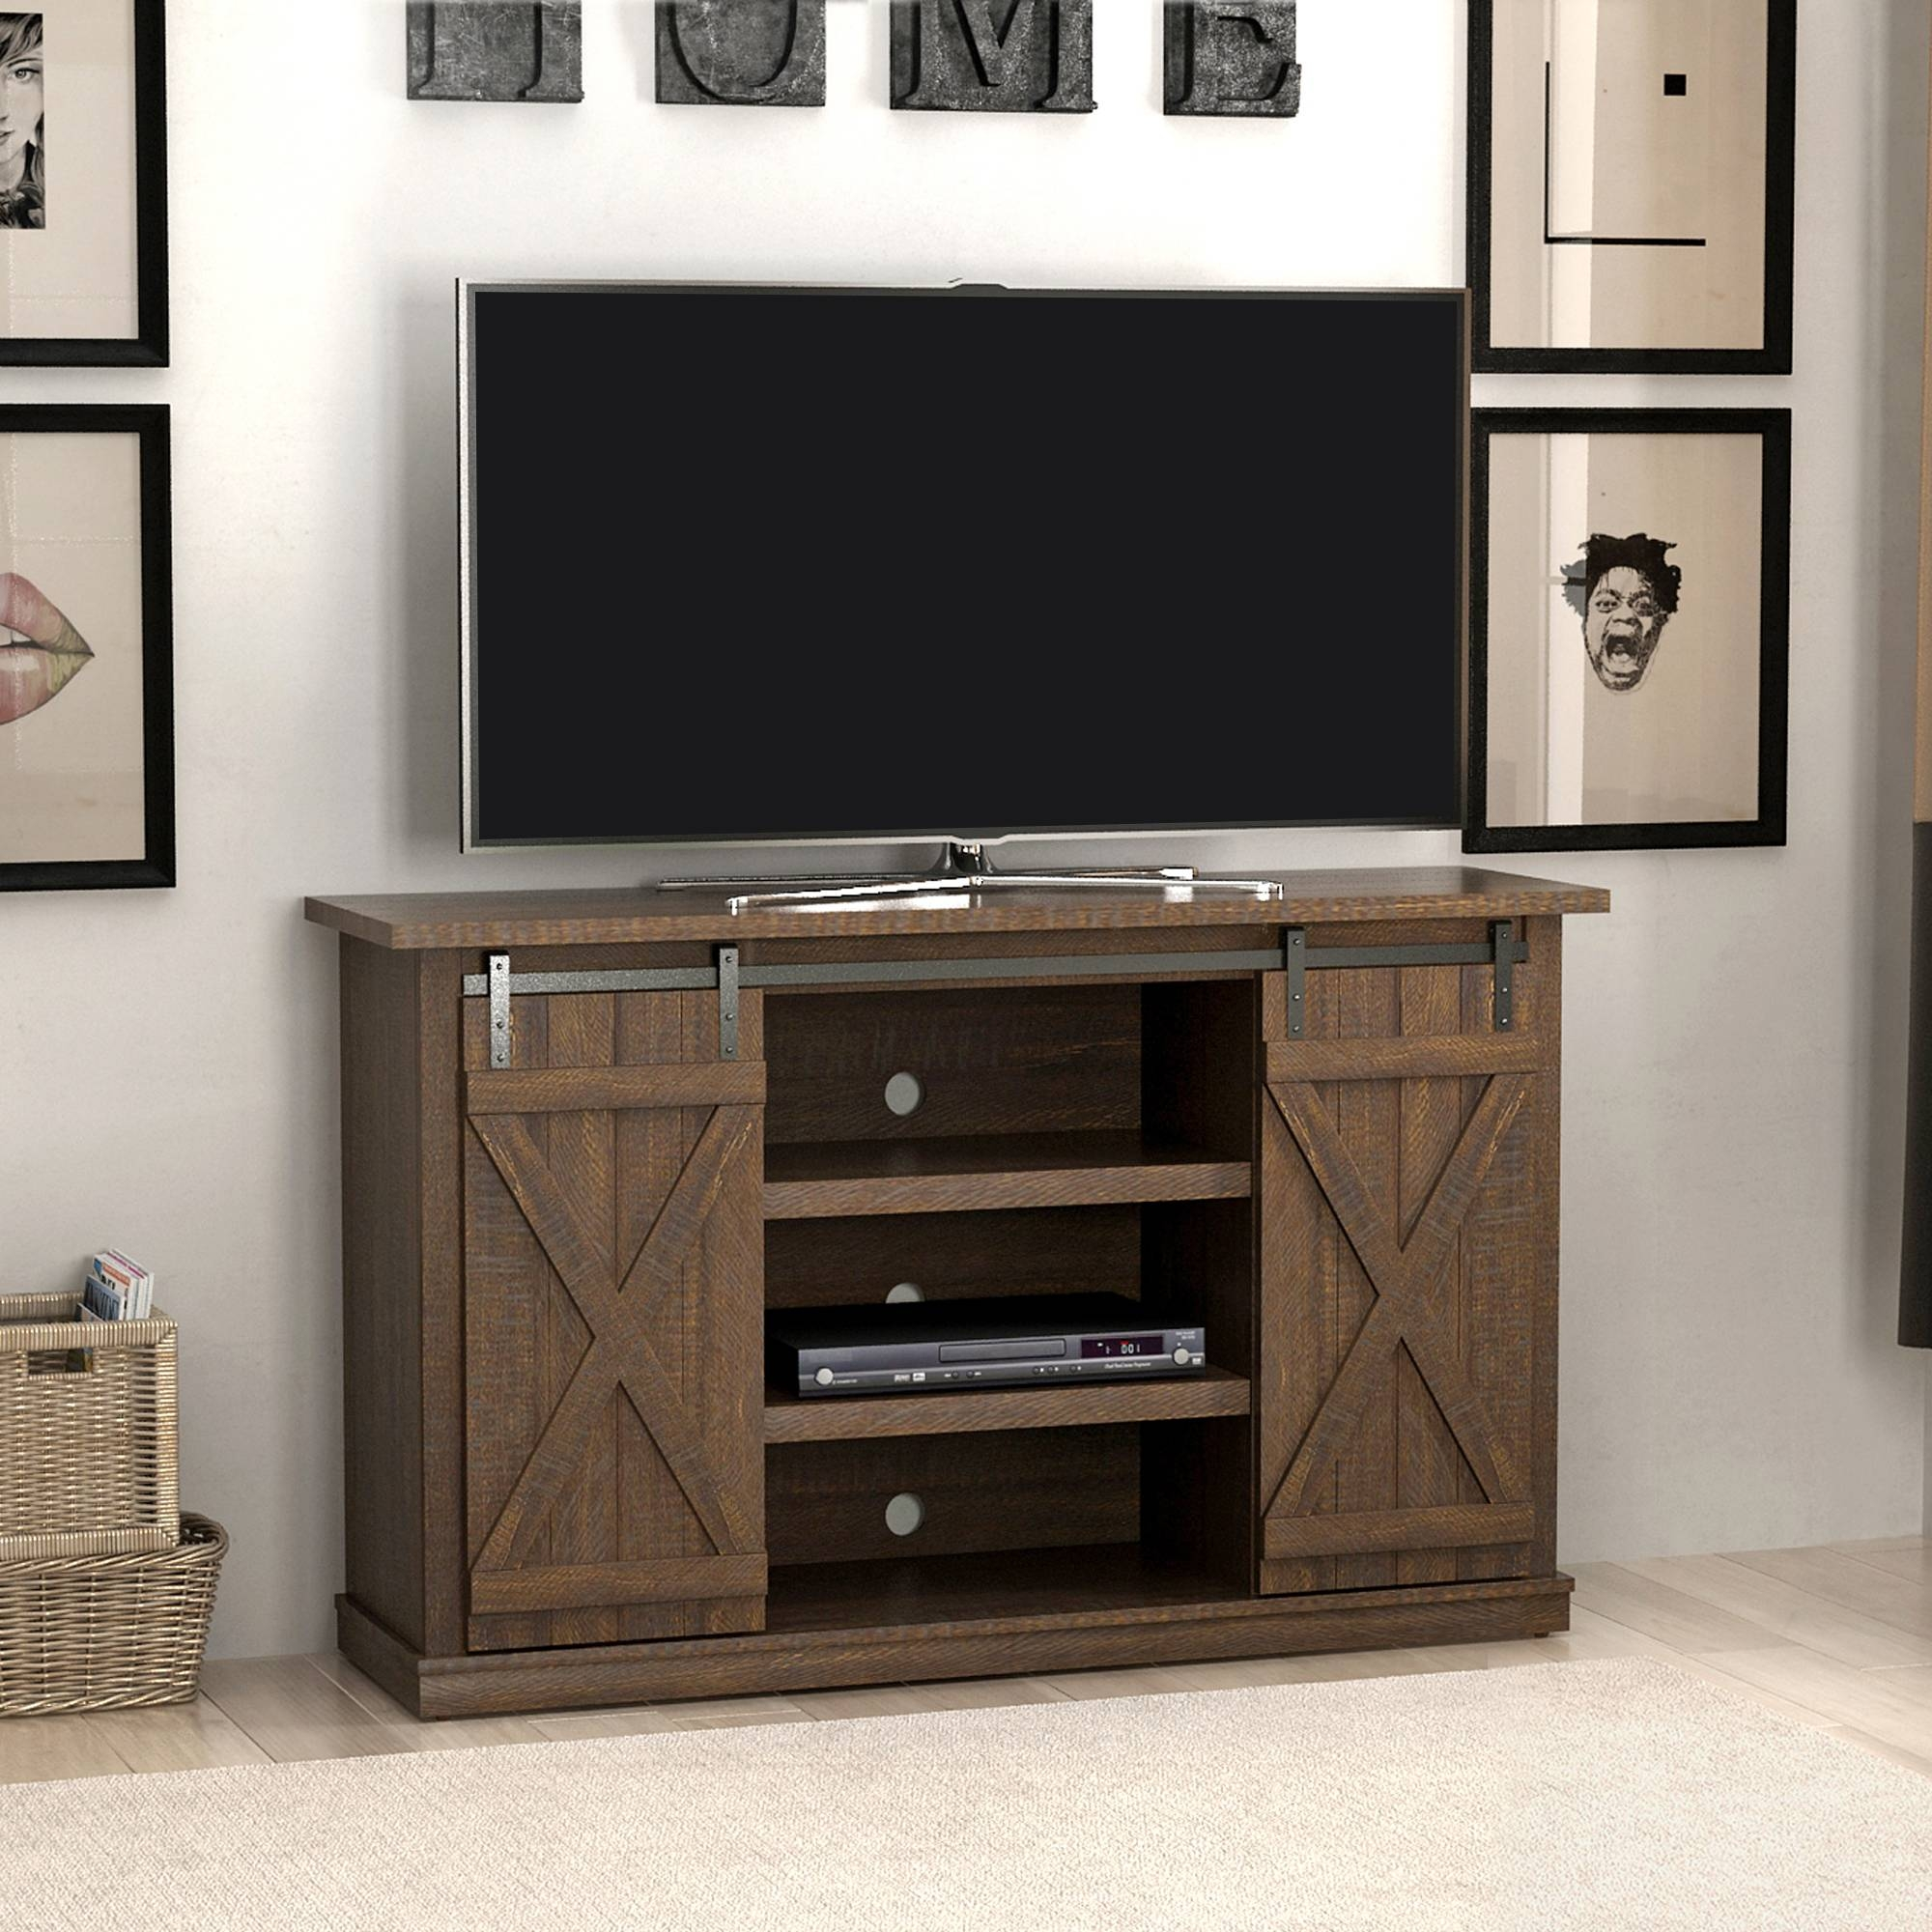 Tv Stands - Walmart regarding 61 Inch Tv Stands (Image 15 of 15)